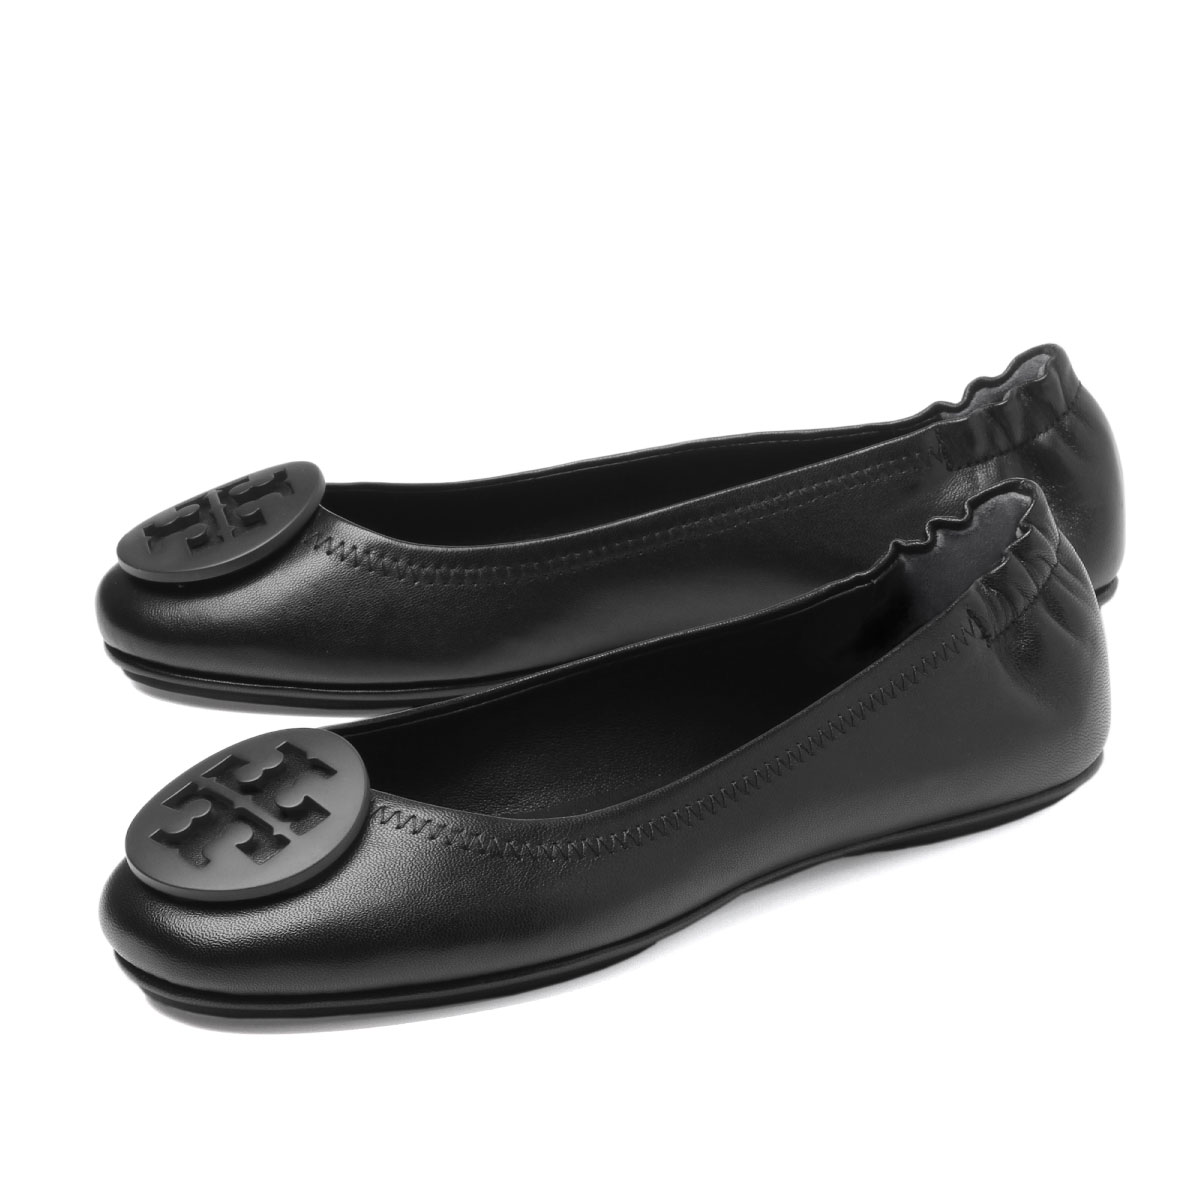 f770317bb importshopdouble  Tolly Birch TORY BURCH shoes Lady s 49350 006 ballet shoes  MINNIE mini PERFECT BLACK black